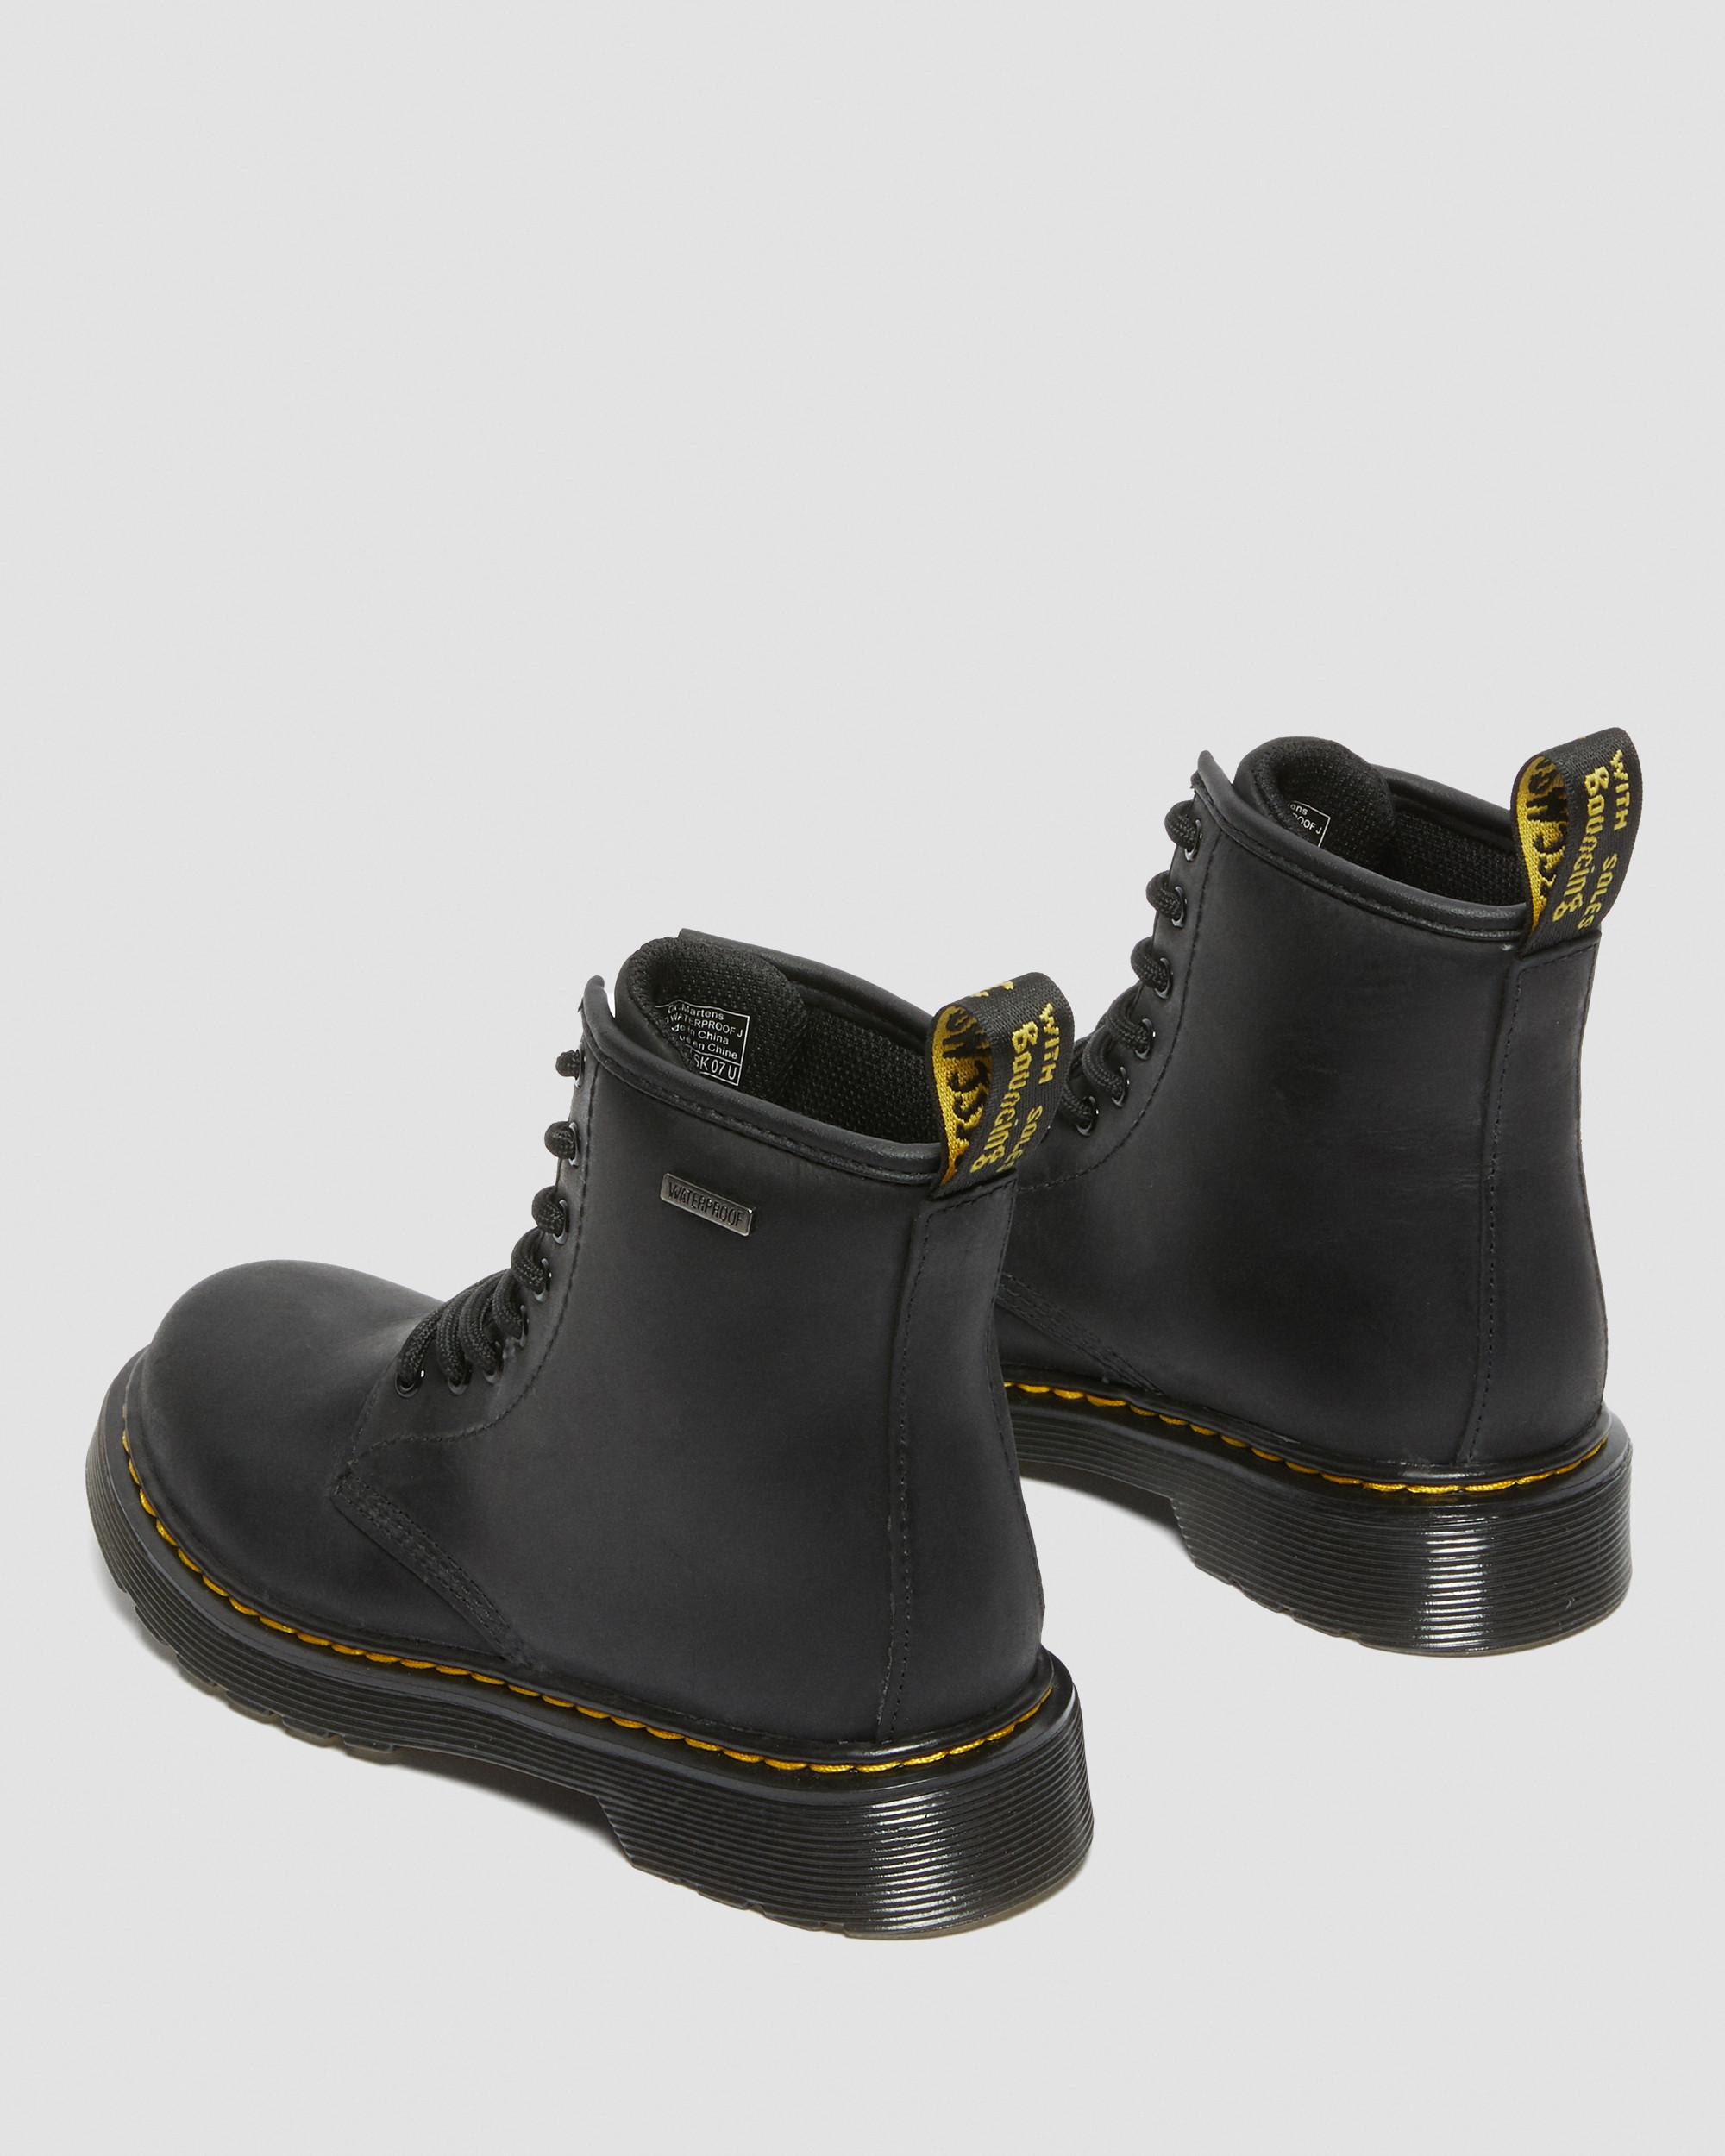 1460 WATERPROOF JUNIOR LEATHER ANKLE